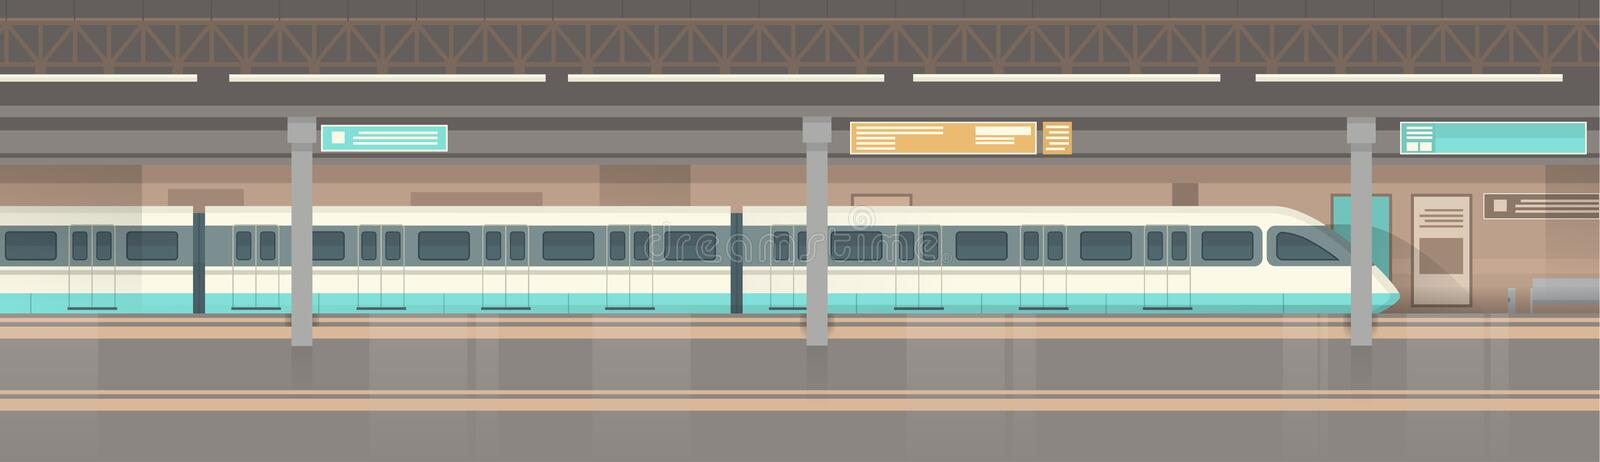 Subway Tram Modern City Public Transport, Underground Rail Road Station stock illustration